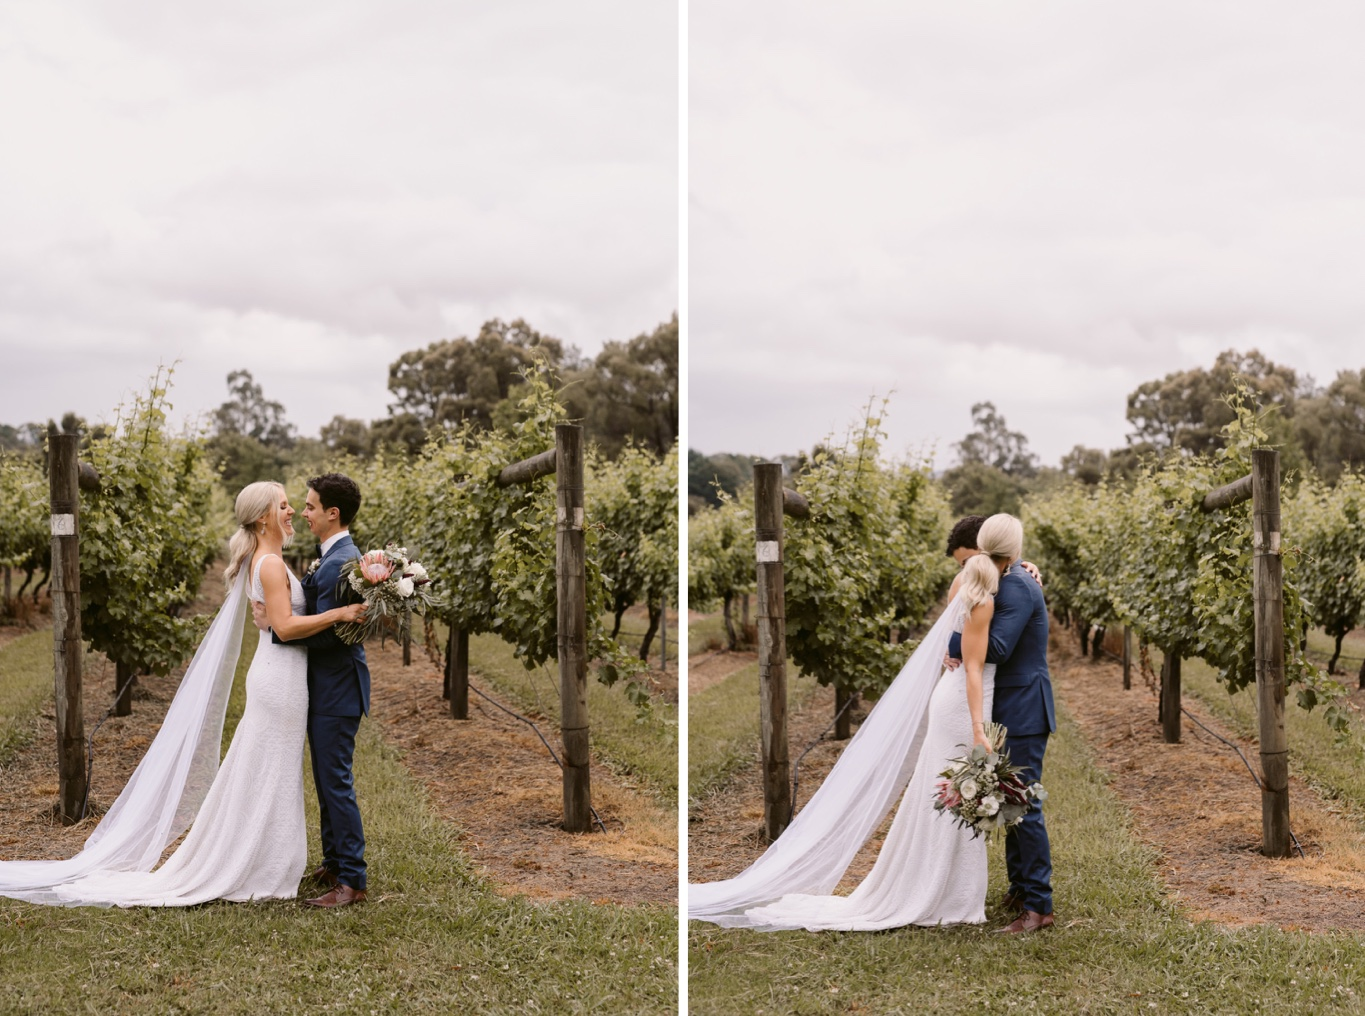 Immerse Yarra Valley Winery Wedding Photography73.jpg